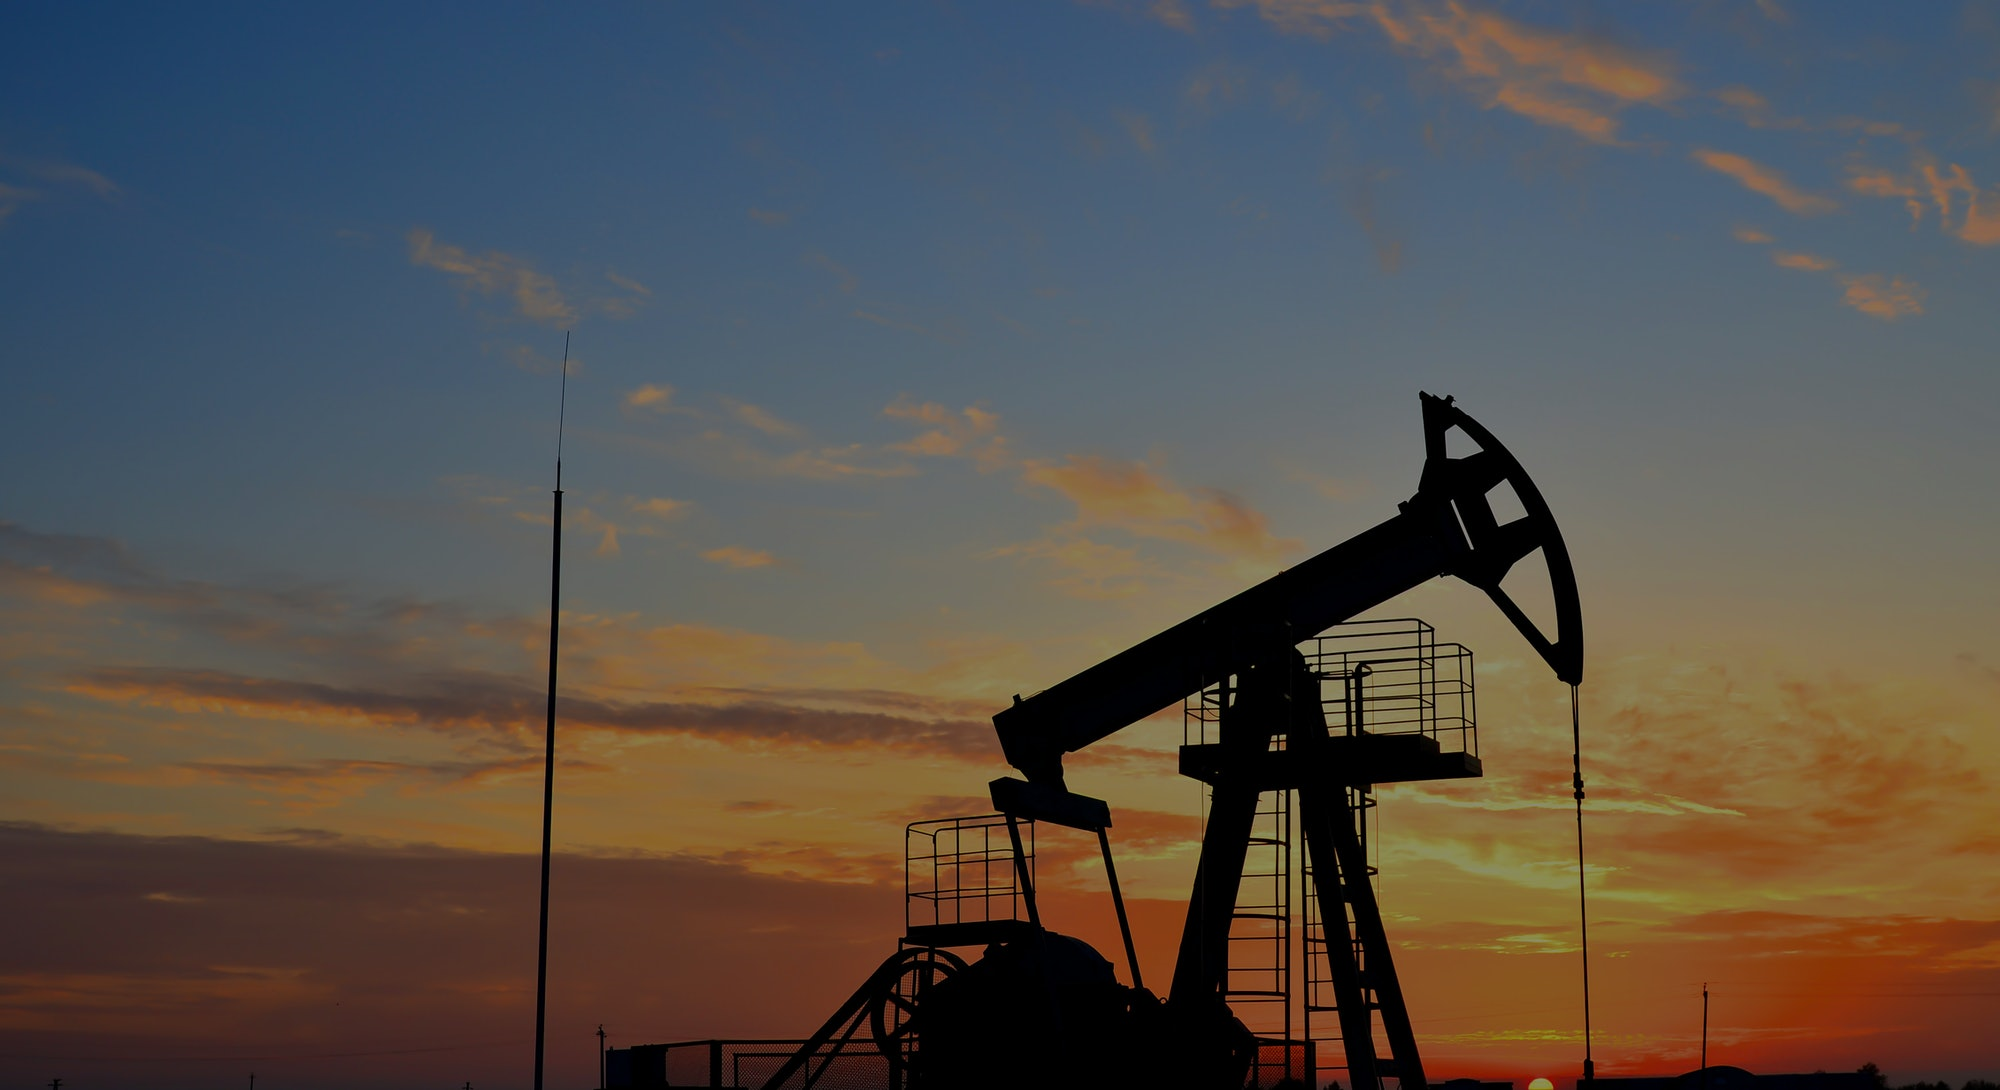 Oil drilling derricks at desert oilfield for fossil fuels output and crude oil production from the g...